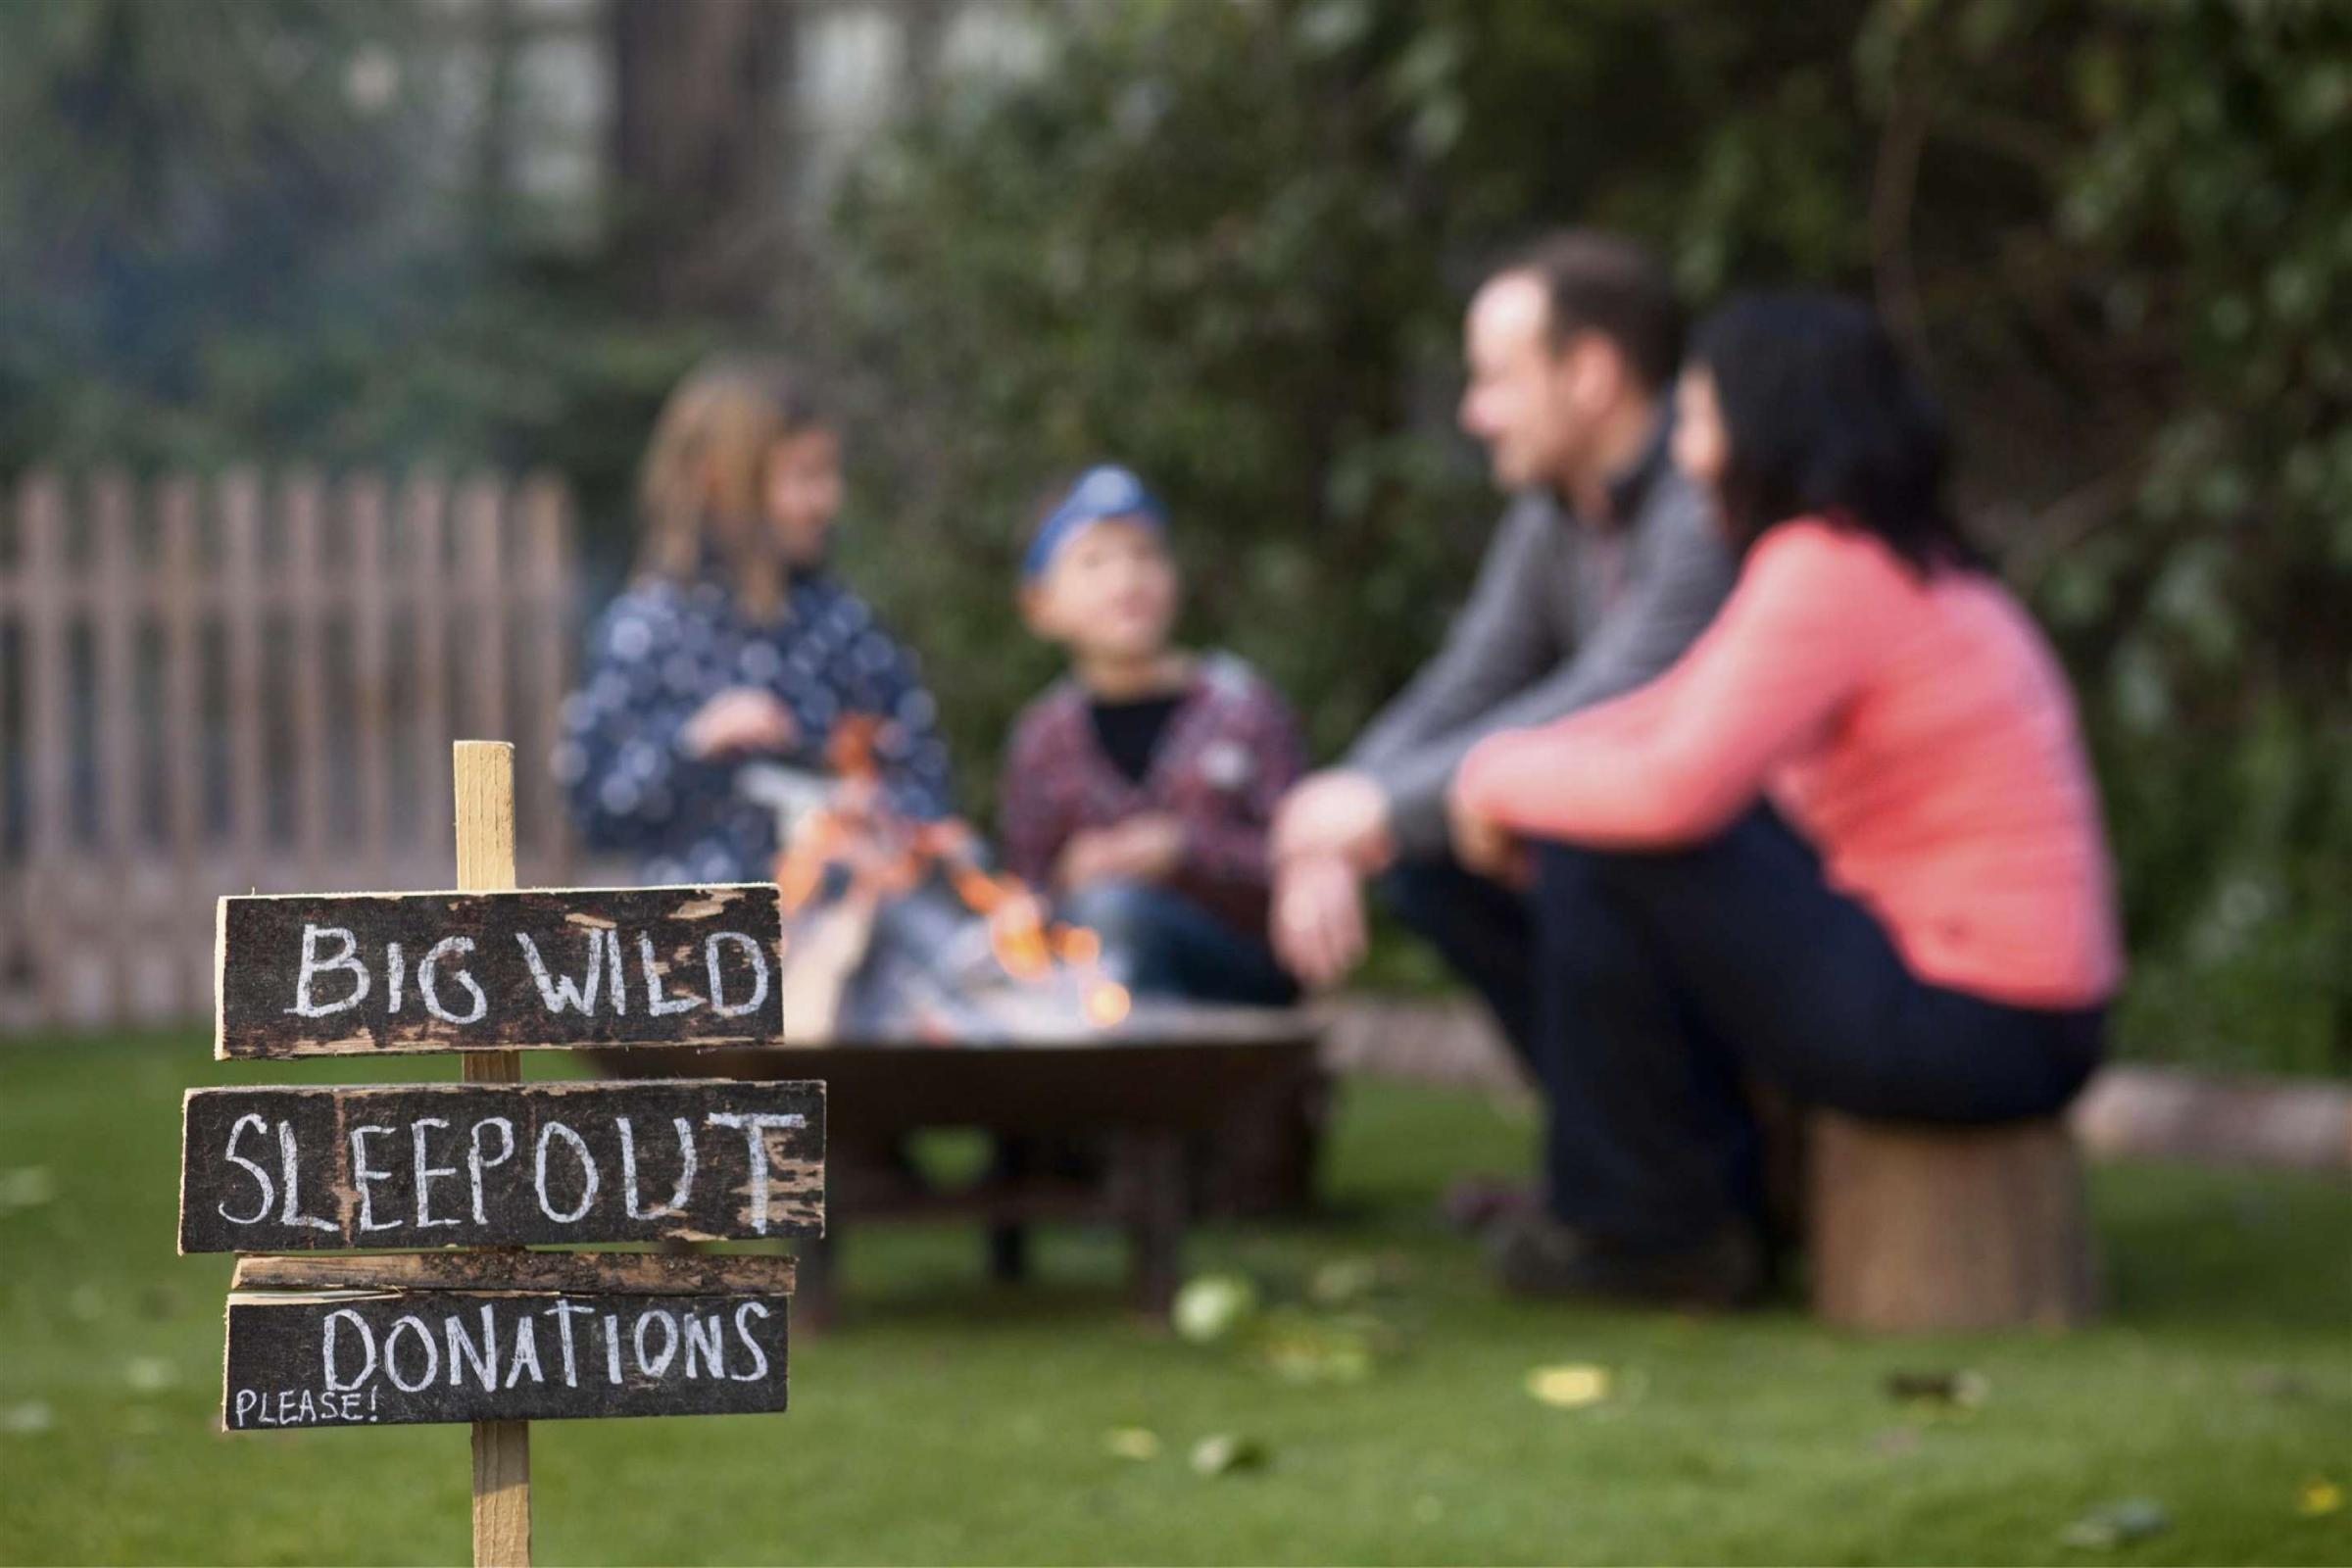 Carry on camping - and raise funds for the RSPB